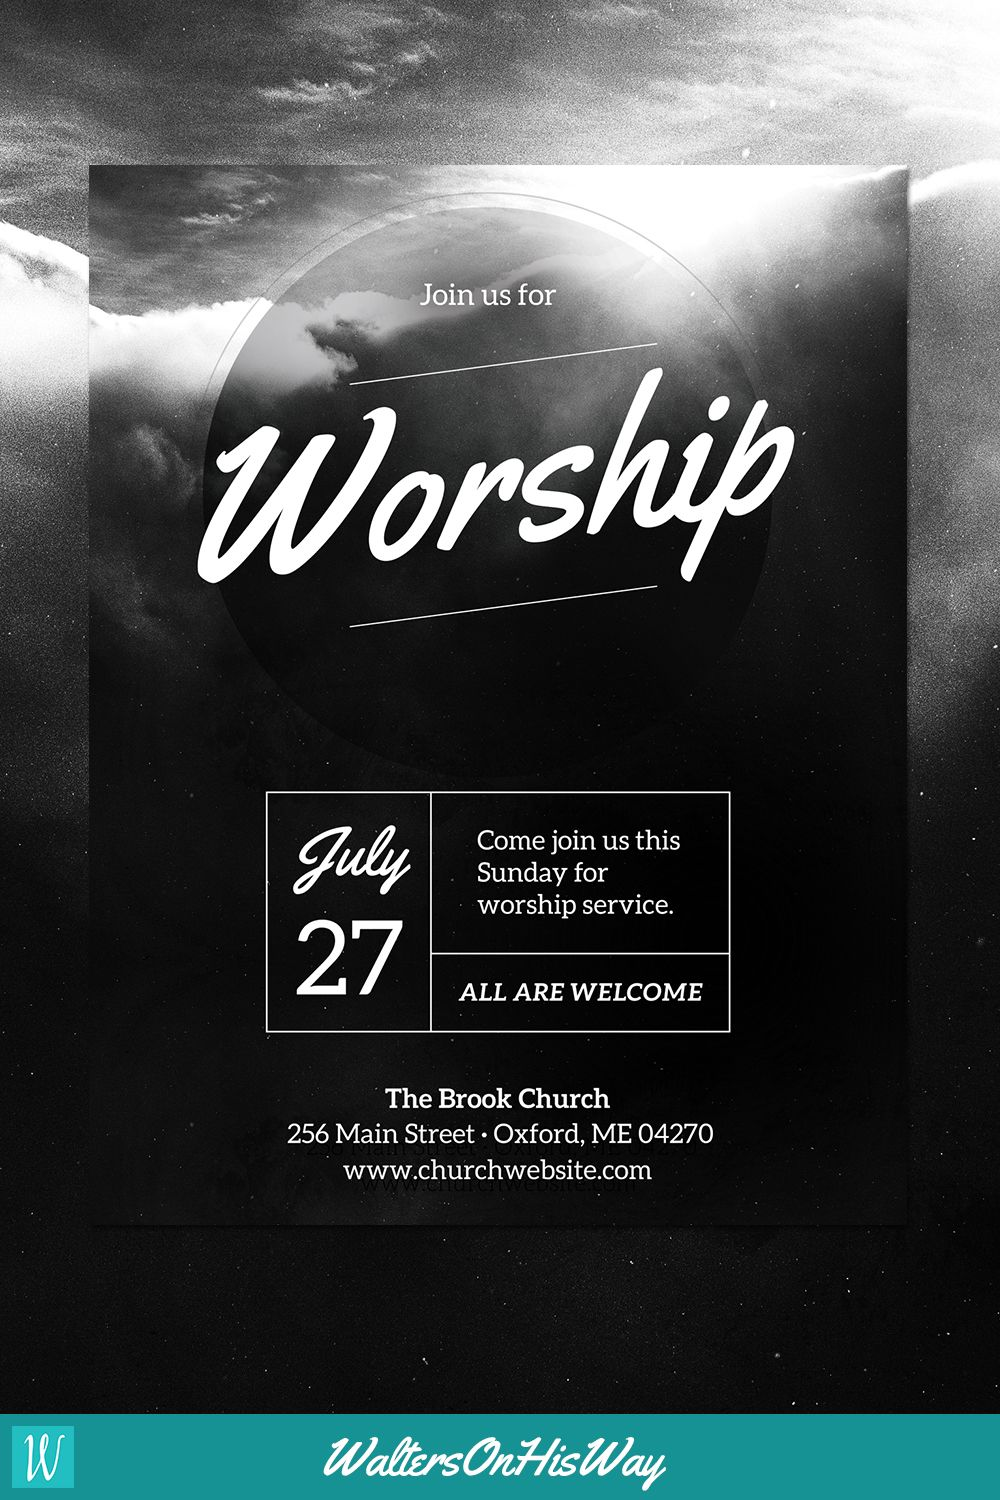 DIY Church Event Flyer Template   Heavenly Worship   (For Word U0026 Photoshop)u2026  Flyer Samples For An Event